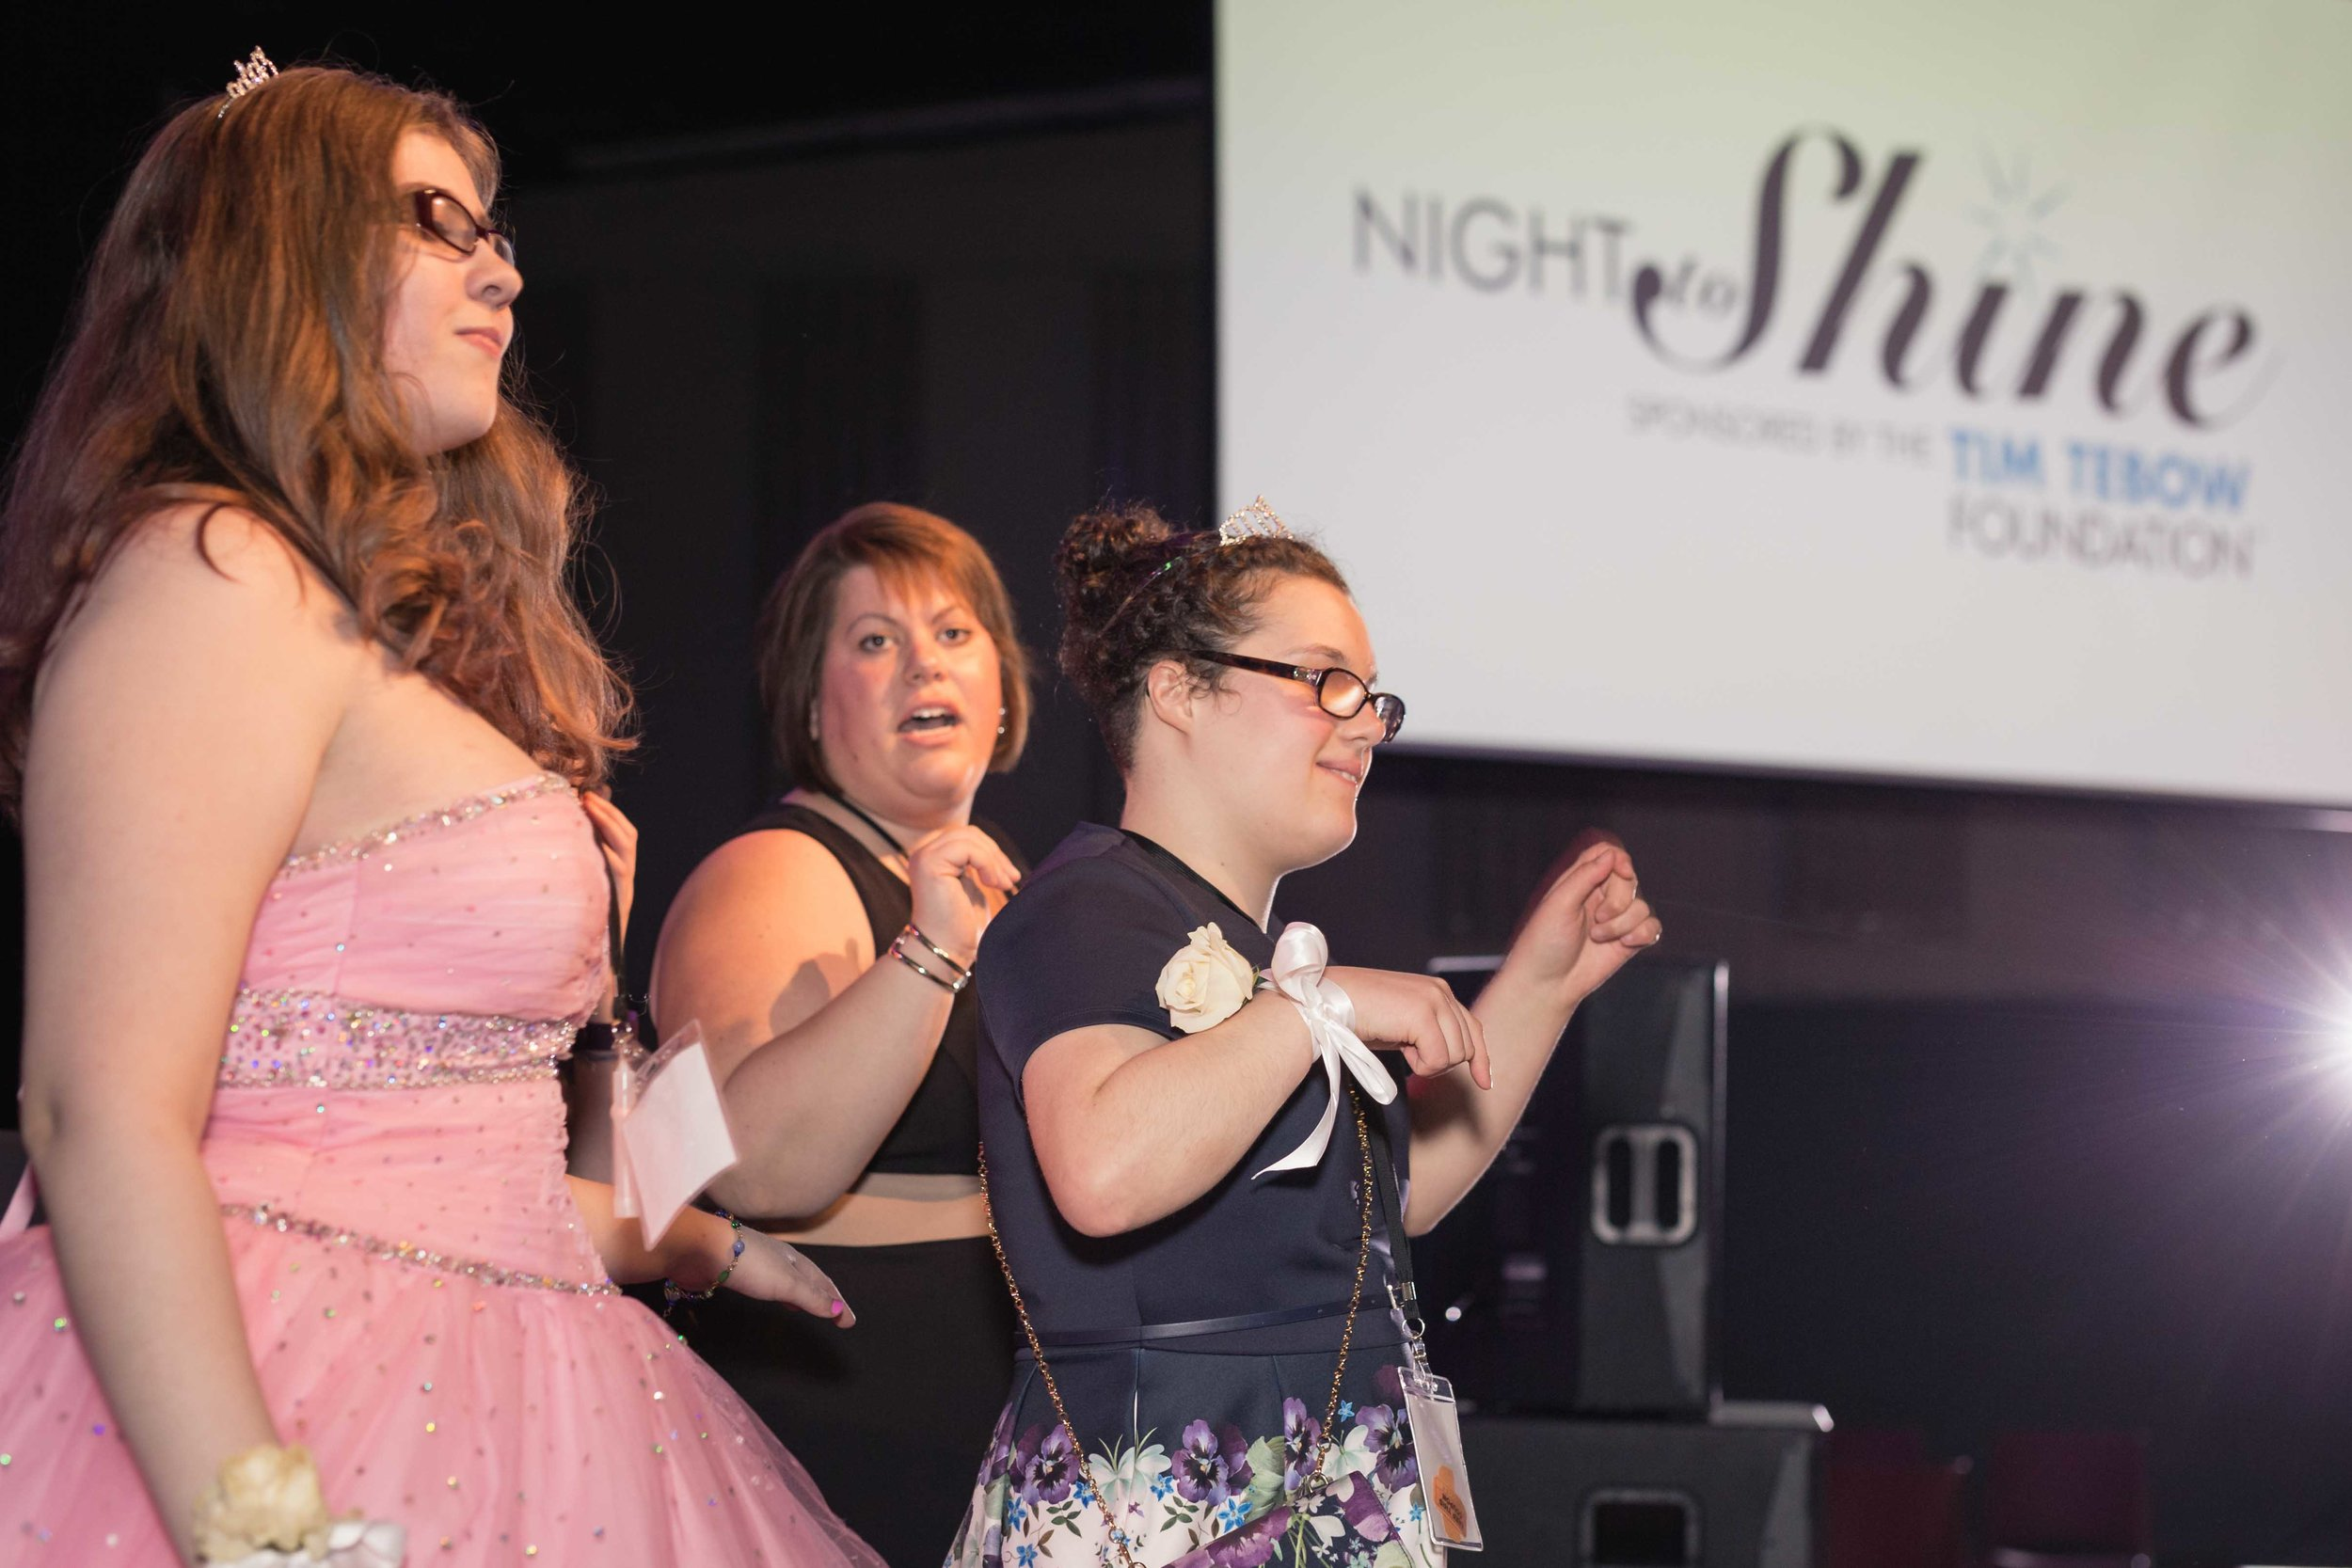 InBetweenDreamsWedding_NightToShine2018_HorizonChurch (407 of 514).jpg